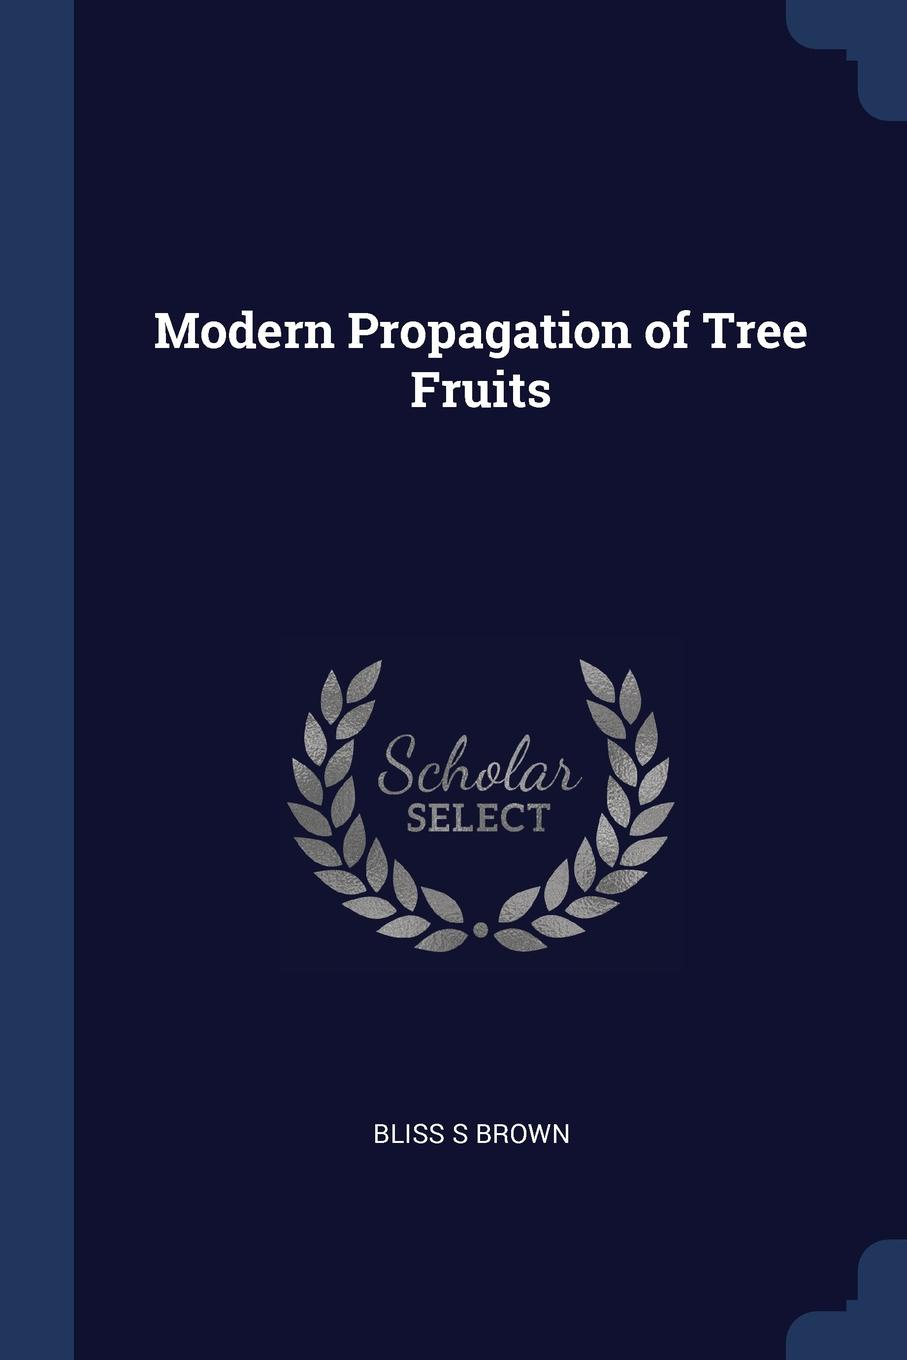 Modern Propagation of Tree Fruits. Bliss S Brown